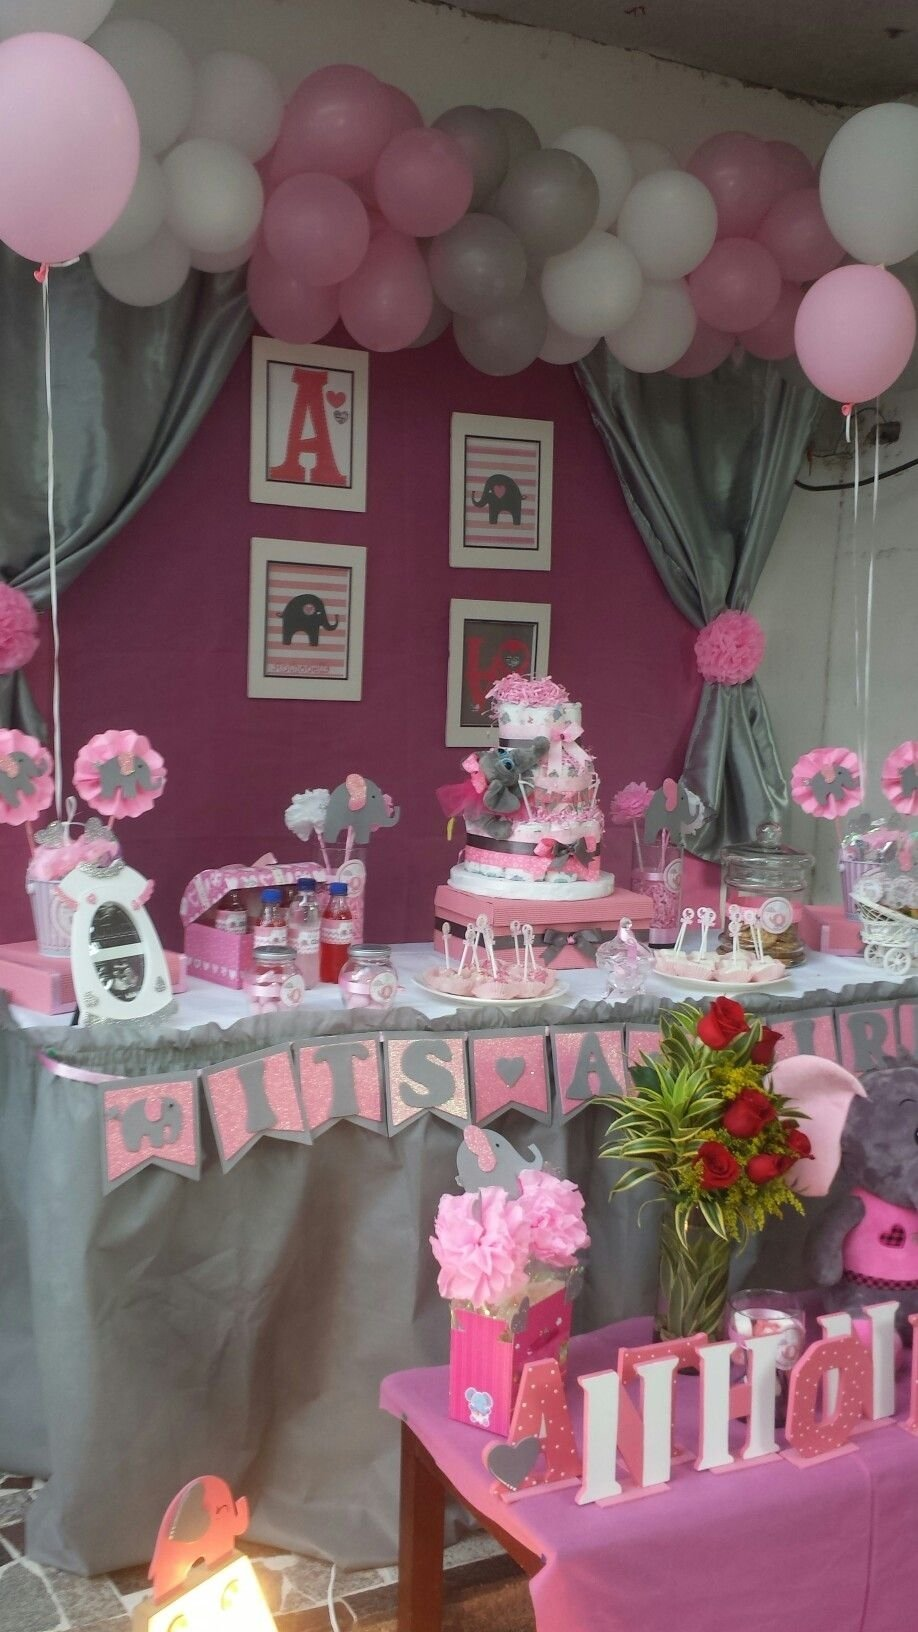 10 Pretty Ideas For A Baby Shower For A Girl elephant pink and grey baby shower pinteres 2021